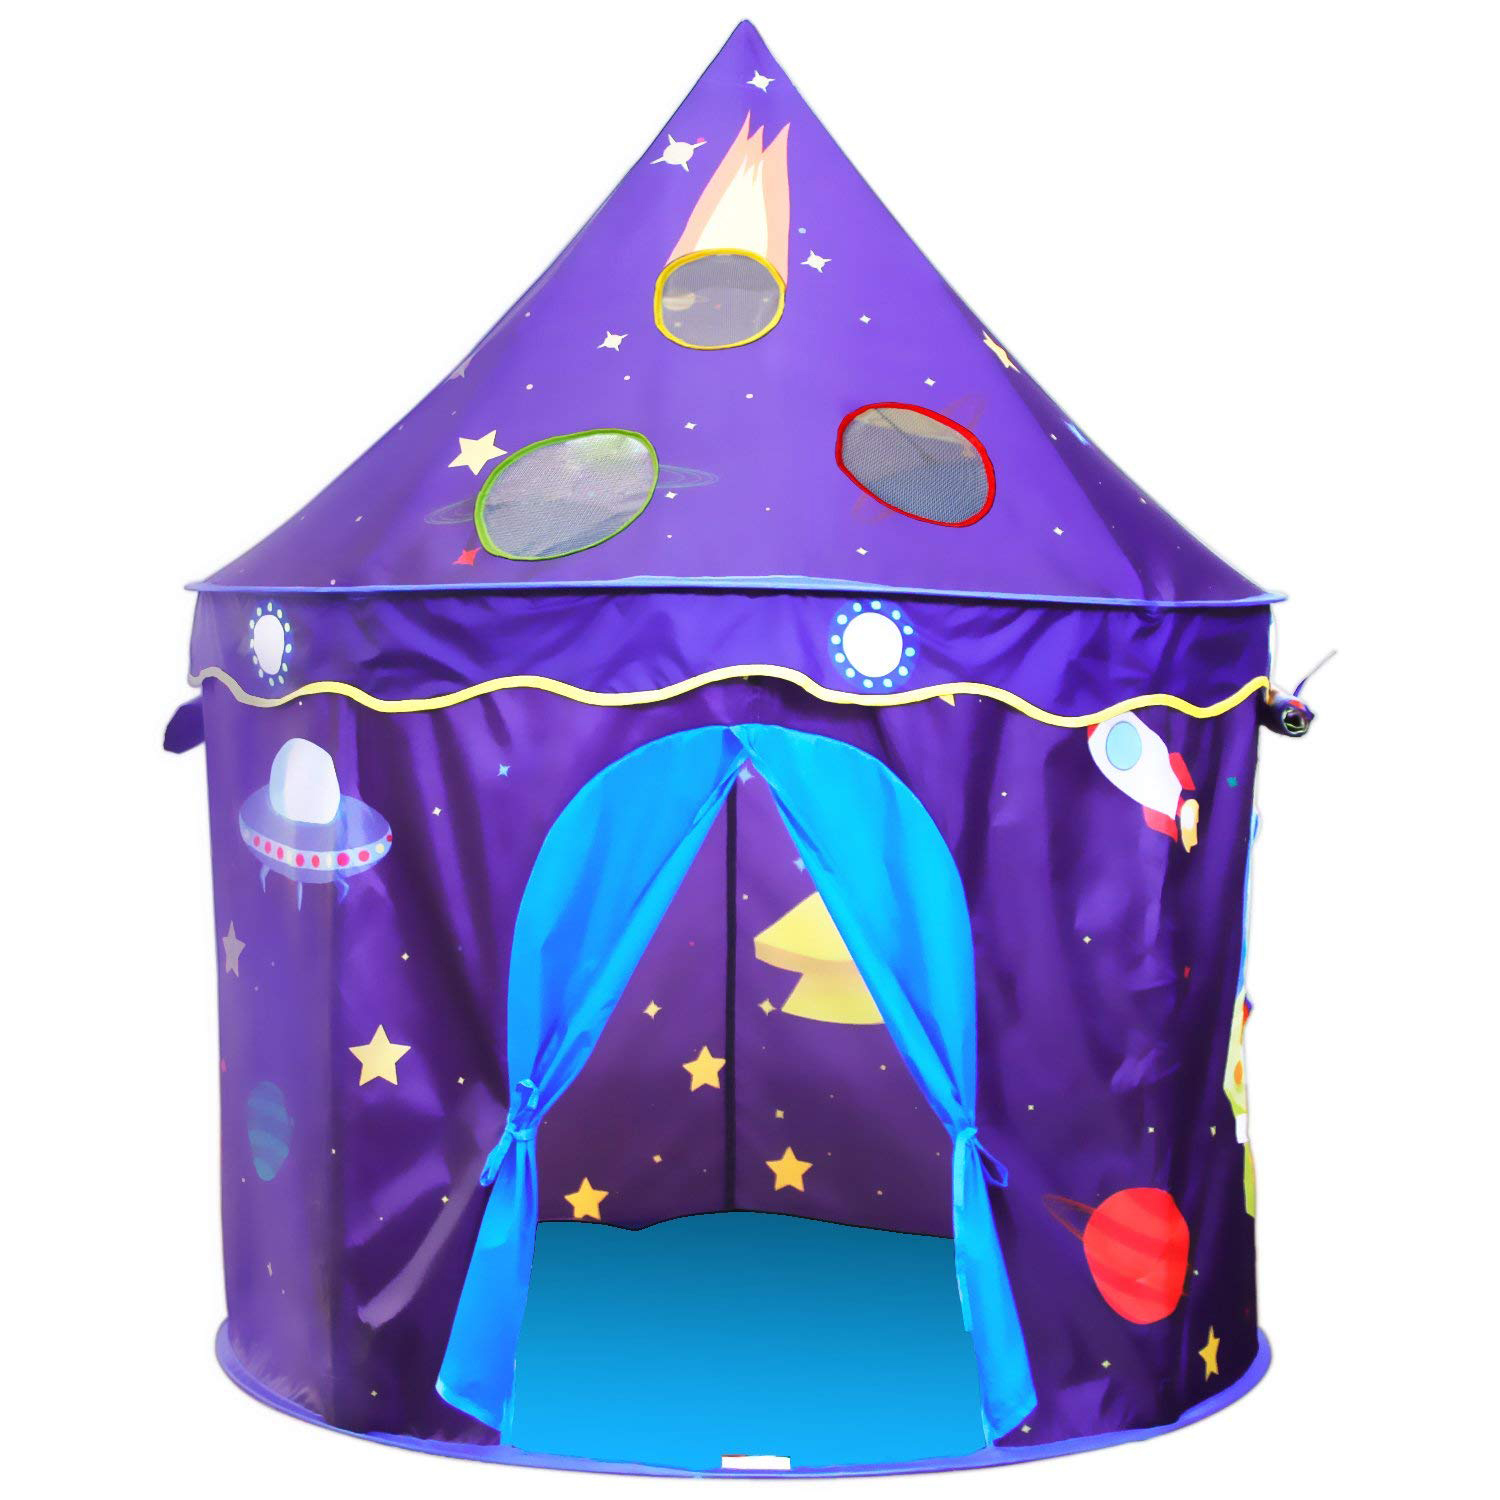 Children's Tent for Outdoor Indoor Games Play Foldable Tent for Girls and Boys with Soft Carpet Kids Birthday Christmas gifts